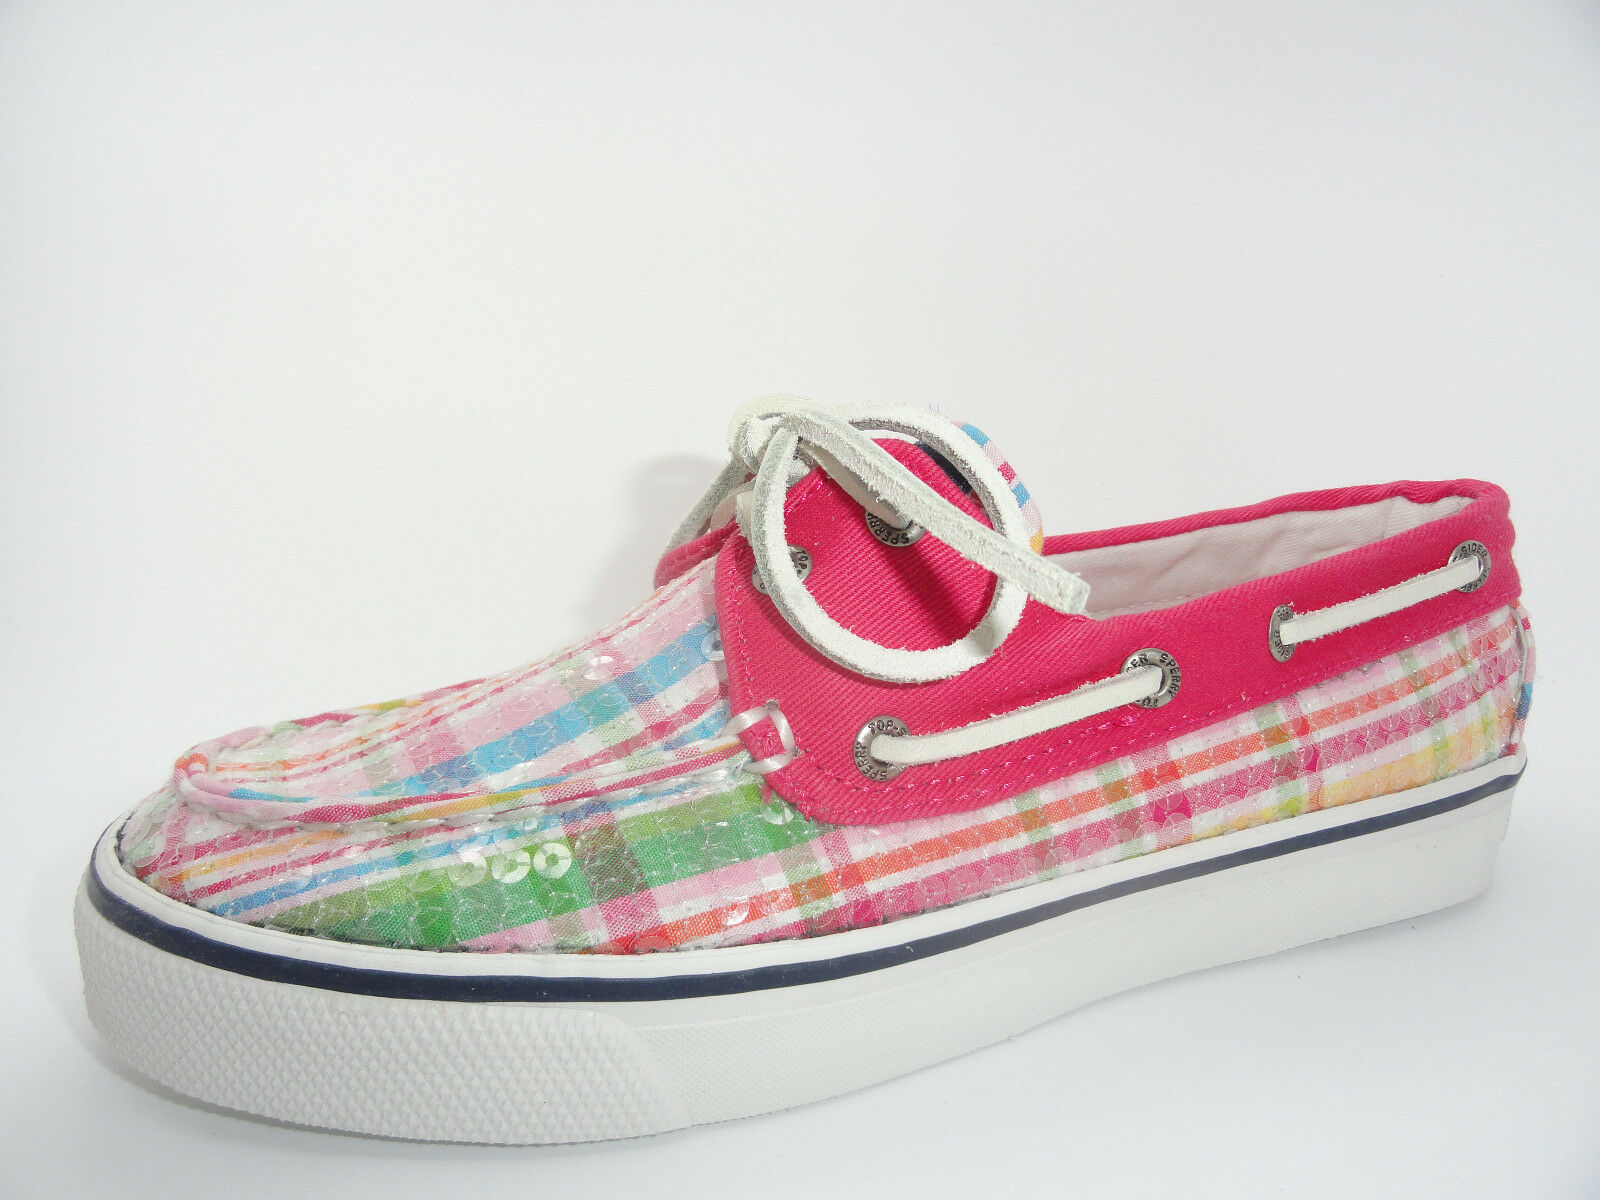 Women's Sperry Top-Sider Bahama Pink Plaid Sequins Boat shoes Size 5.5